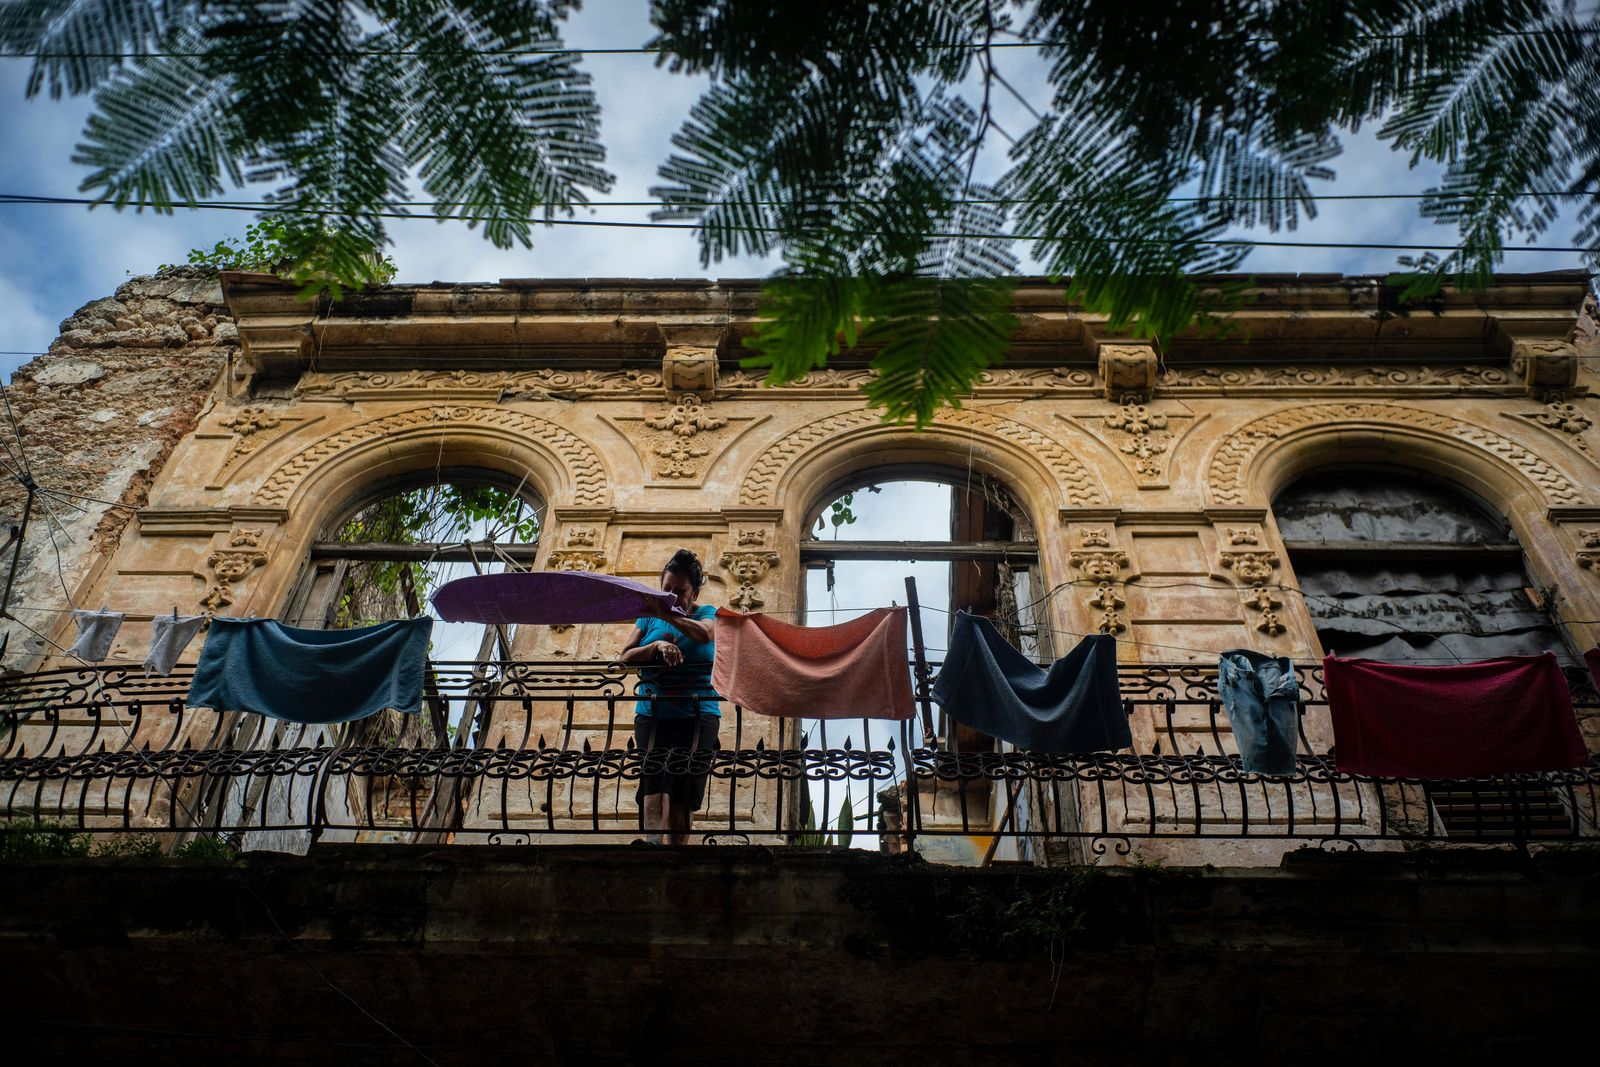 In this Nov. 10, 2019 photo, a woman pulls towels off the line after they dried on the balcony of an old home, missing part of its roof, in Havana, Cuba. The city will celebrate its 500th anniversary on Nov. 16. (AP Photo/Ramon Espinosa)